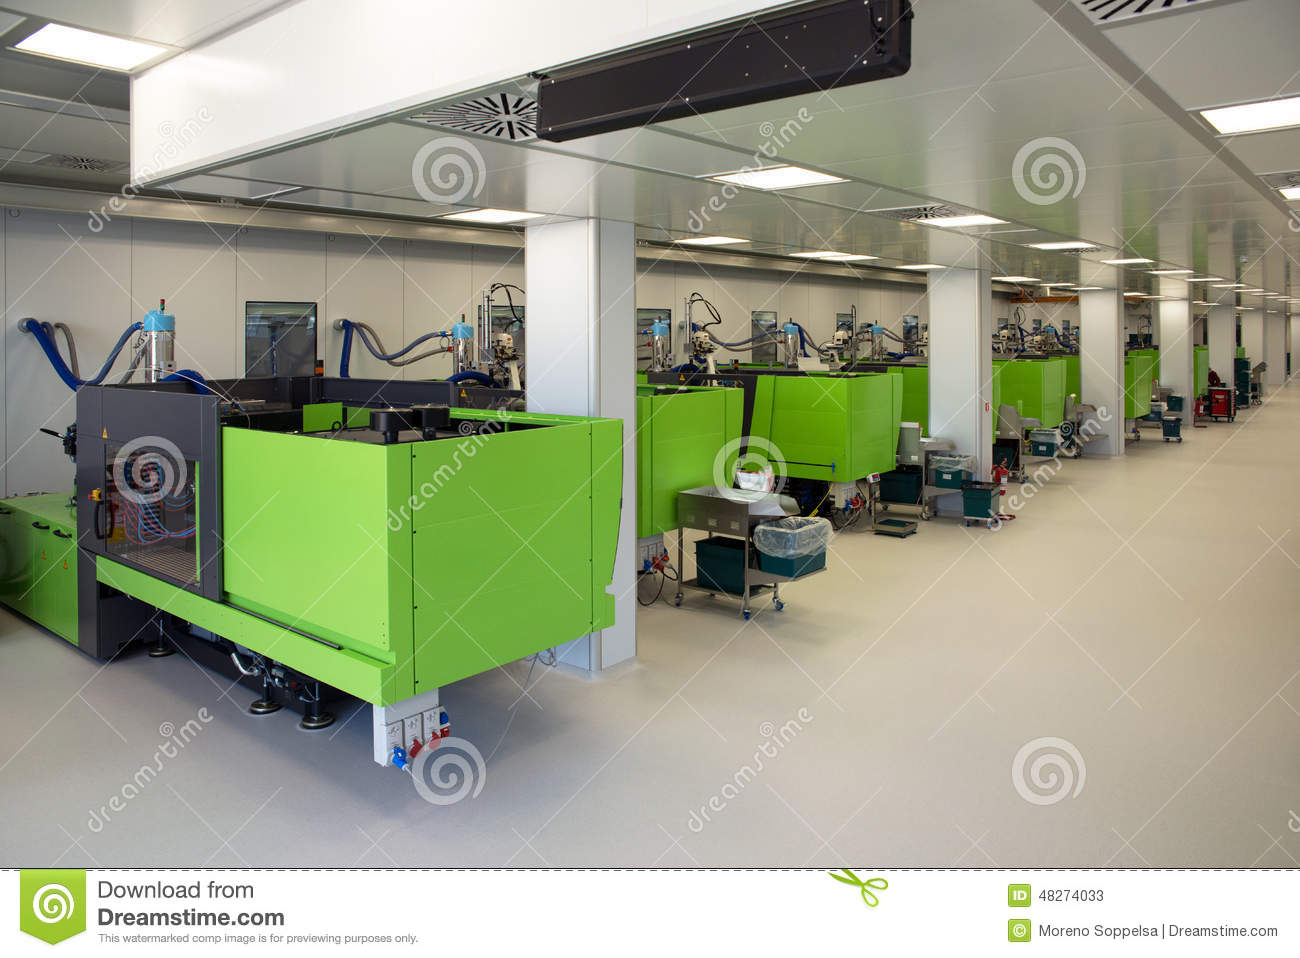 Large cleanroom a cleanroom or clean room is an environment typically